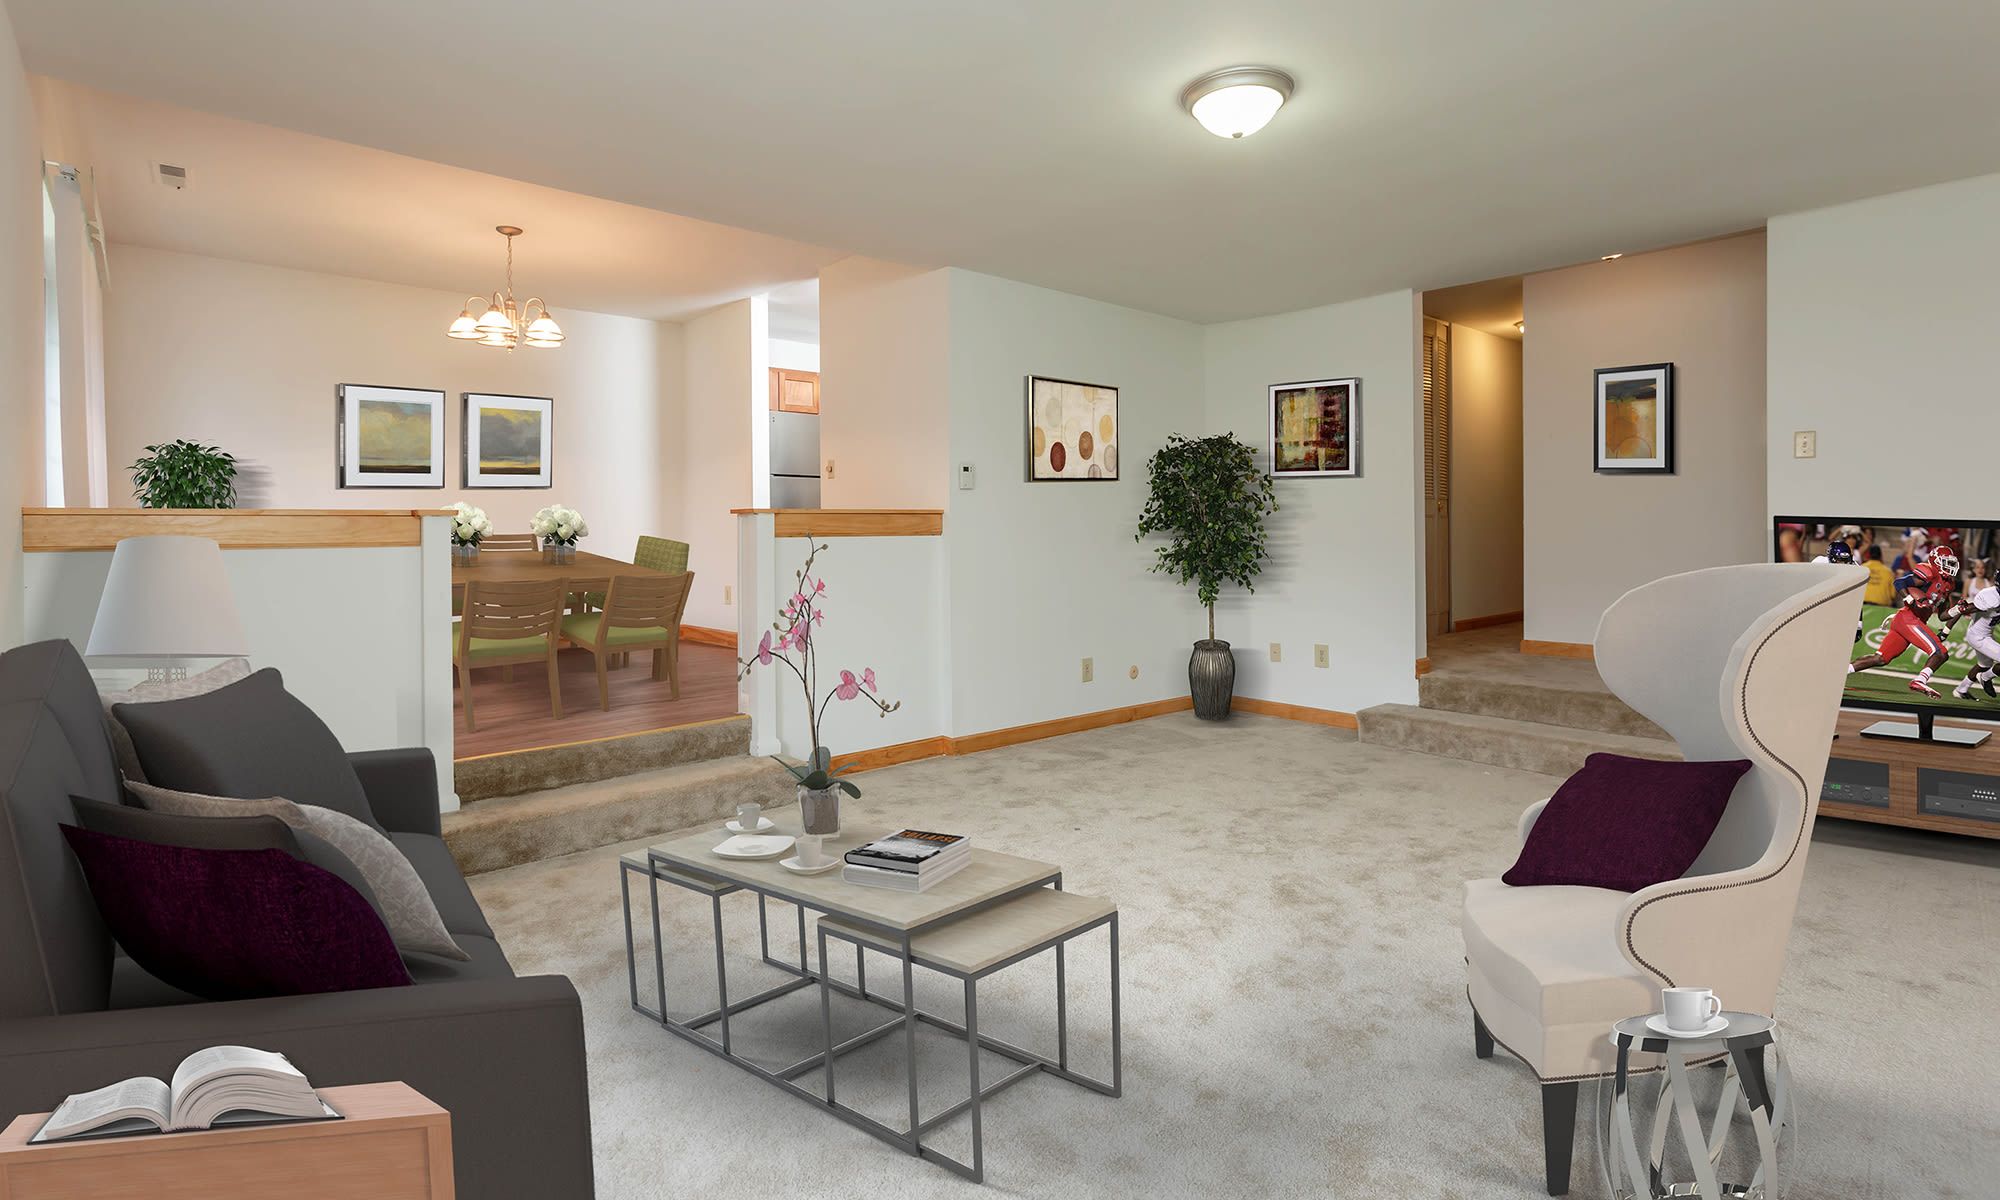 Apartments at Meadowbrook Apartments in Slingerlands, New York